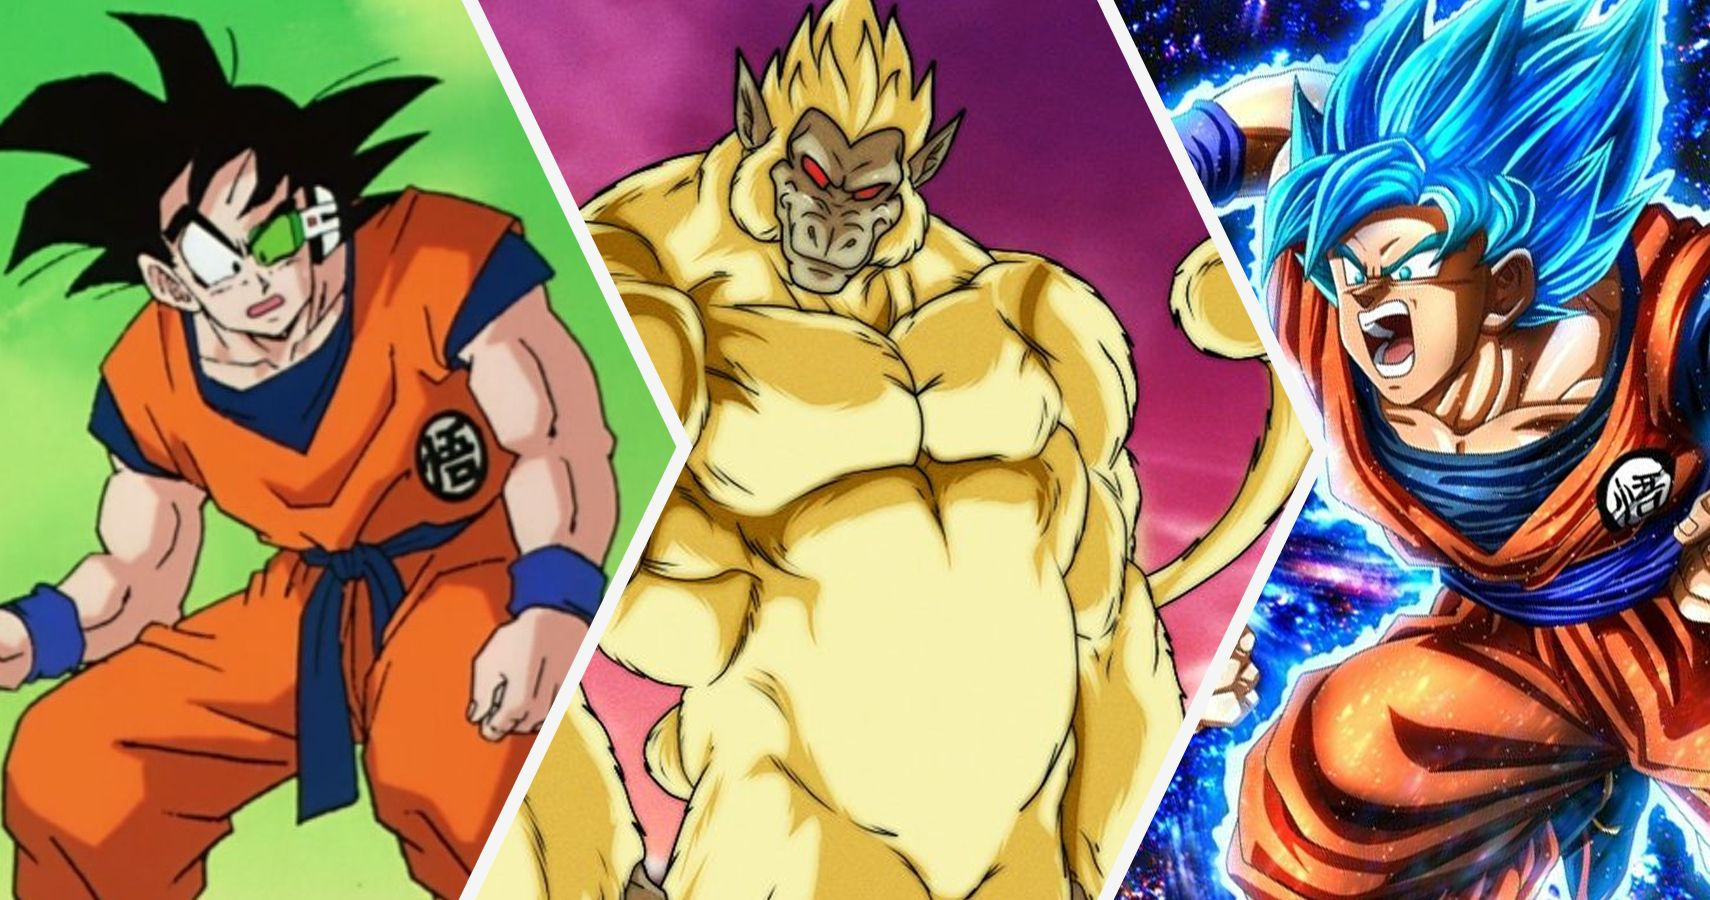 Dragon Ball Z Every Version Of Goku From Weakest To Strongest